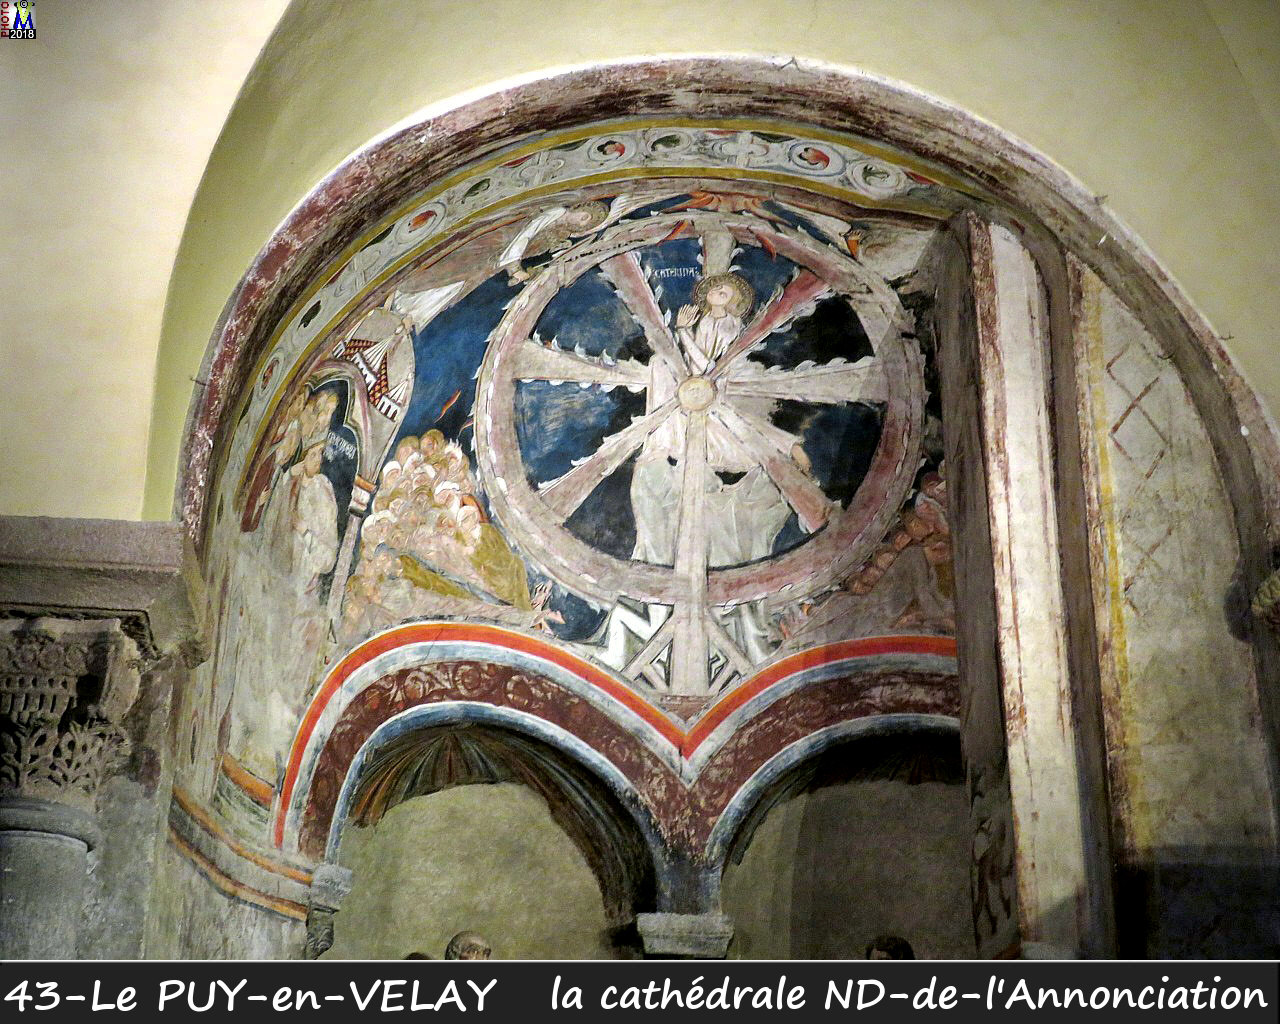 43PUY-EN-VELAY_cathedrale_228.jpg